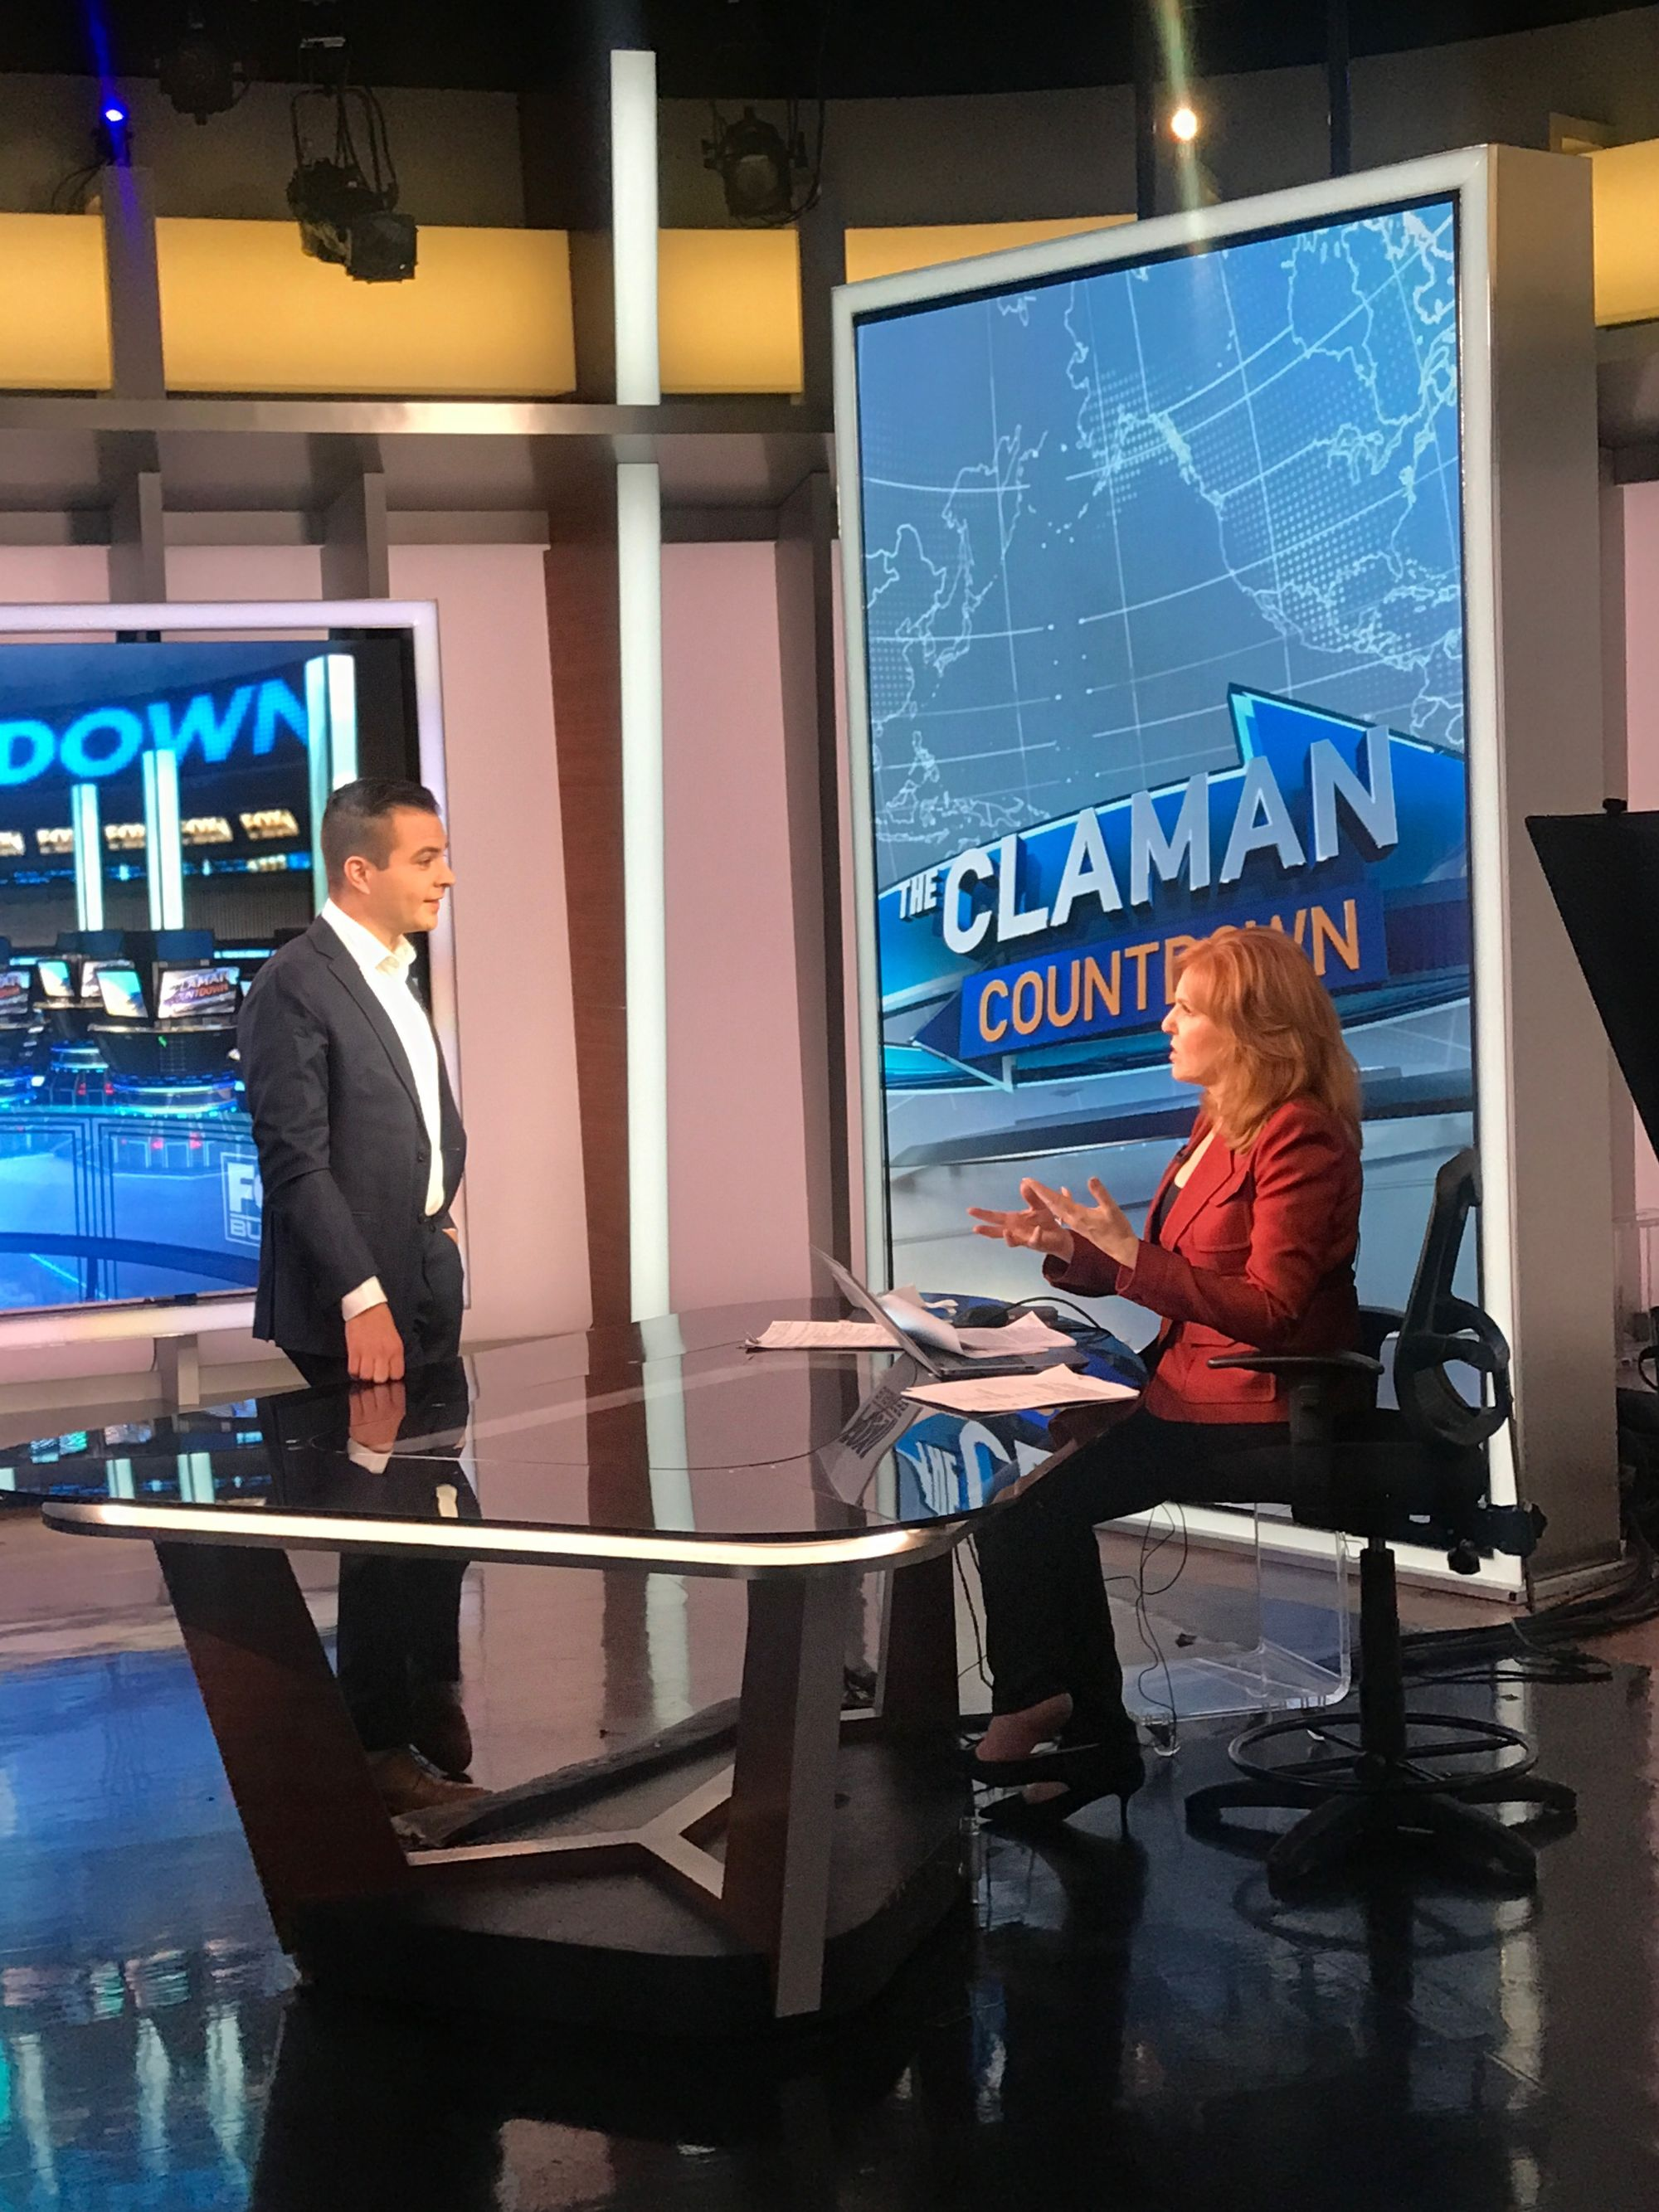 CEO of Lolli Alex Adelman Joins 'The Claman Countdown' on Fox Business 📽️